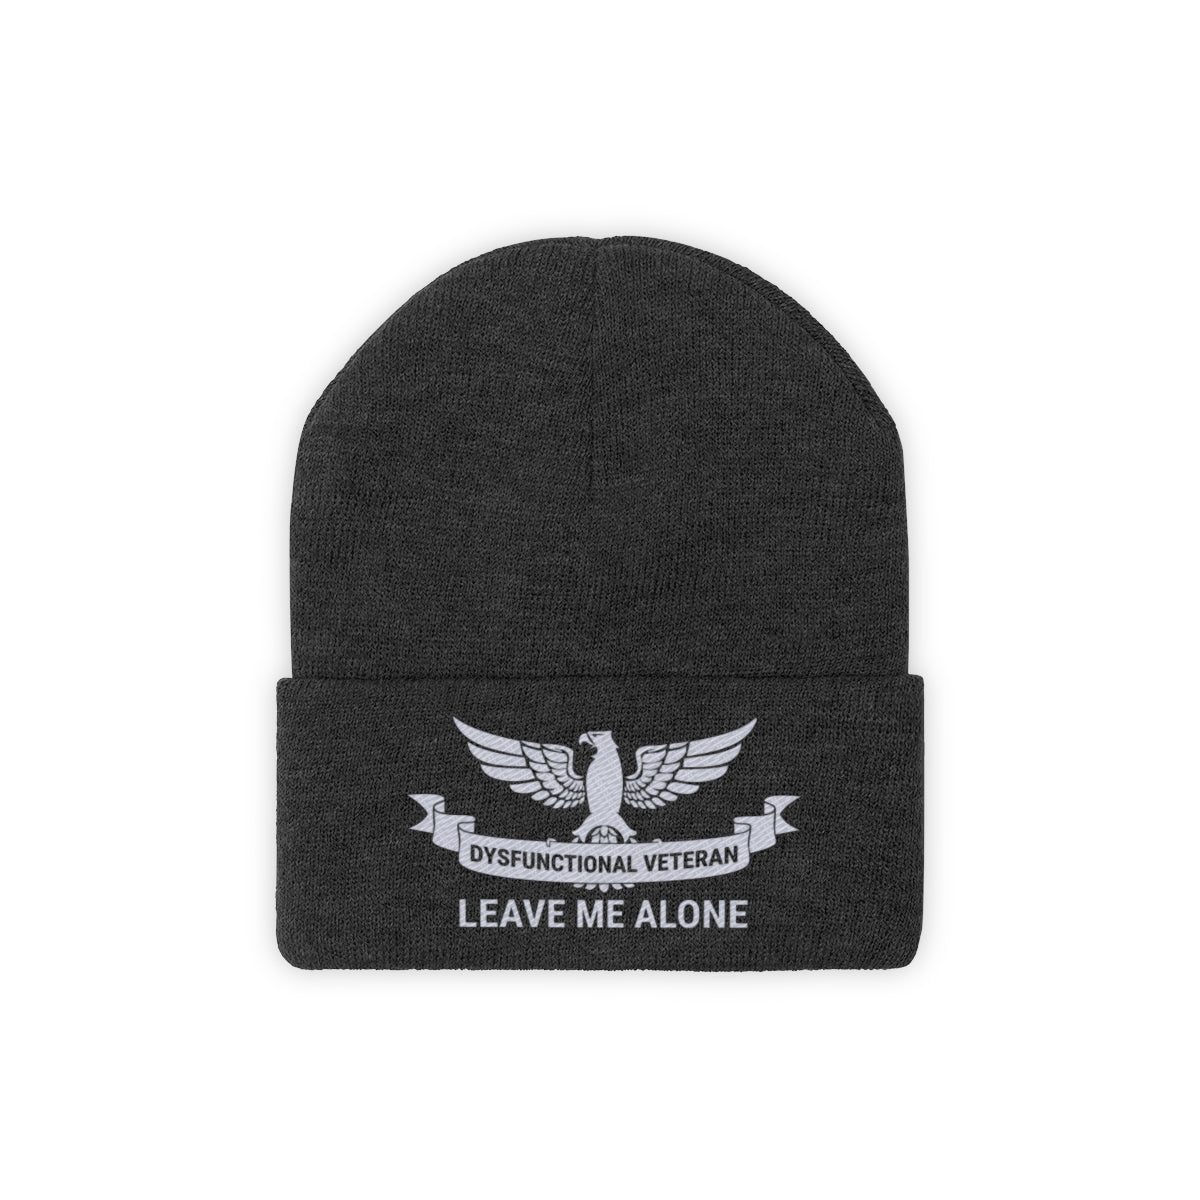 Dysfunctional Veteran - Leave Me Alone Knit Beanie